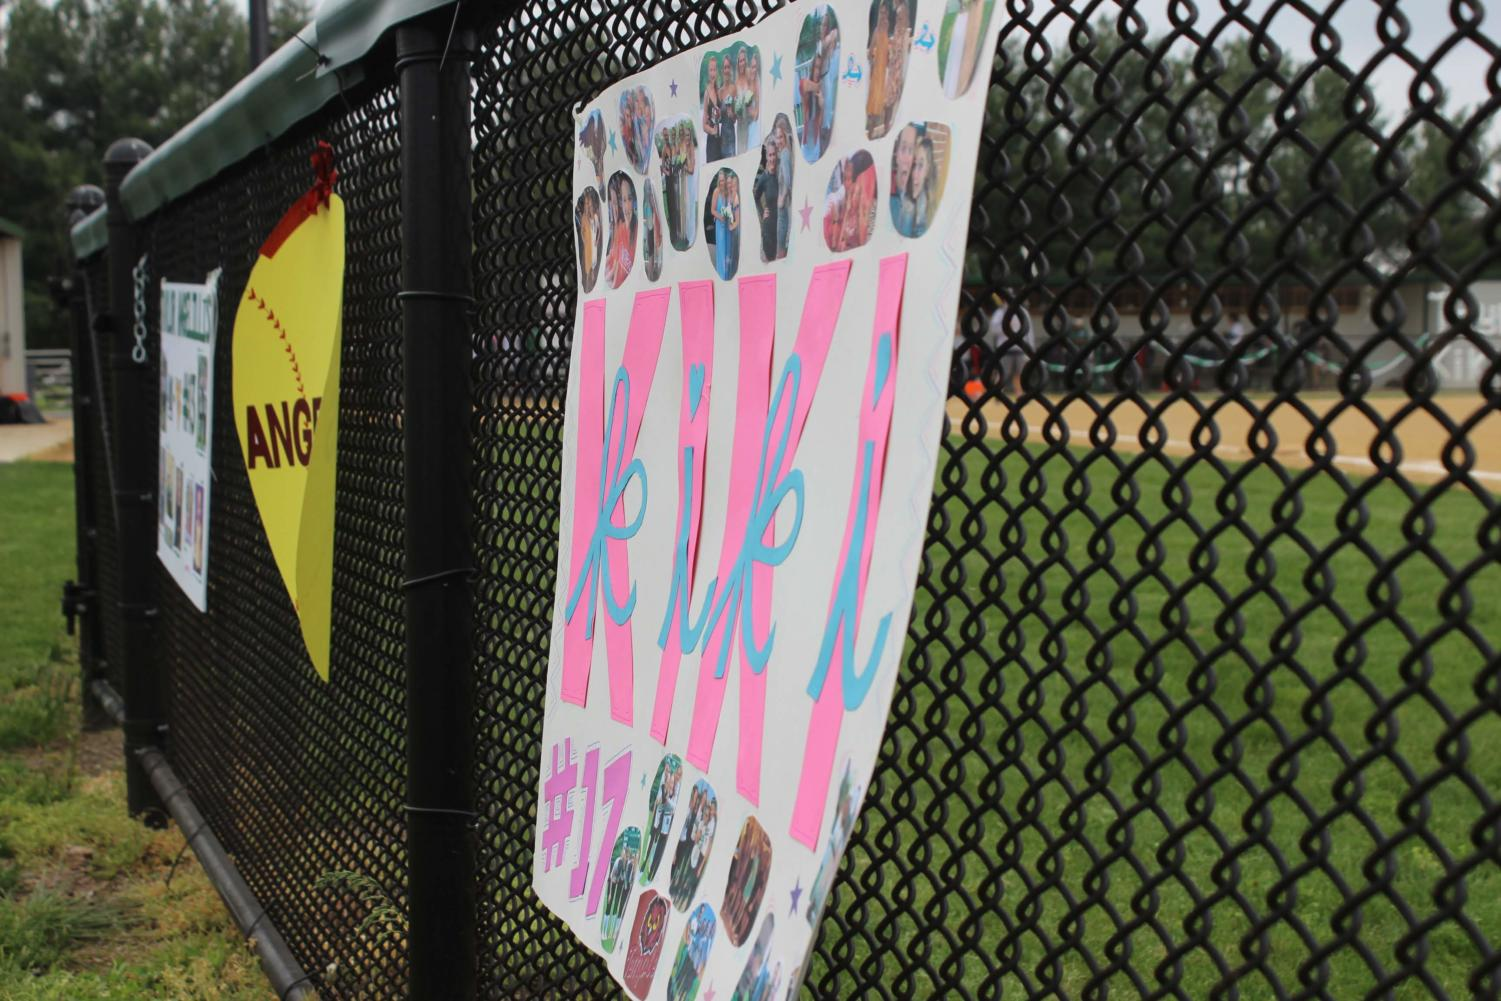 The+varsity+field+fence+was+adorned+with+posters+to+celebrate+the+graduating+seniors.%0A